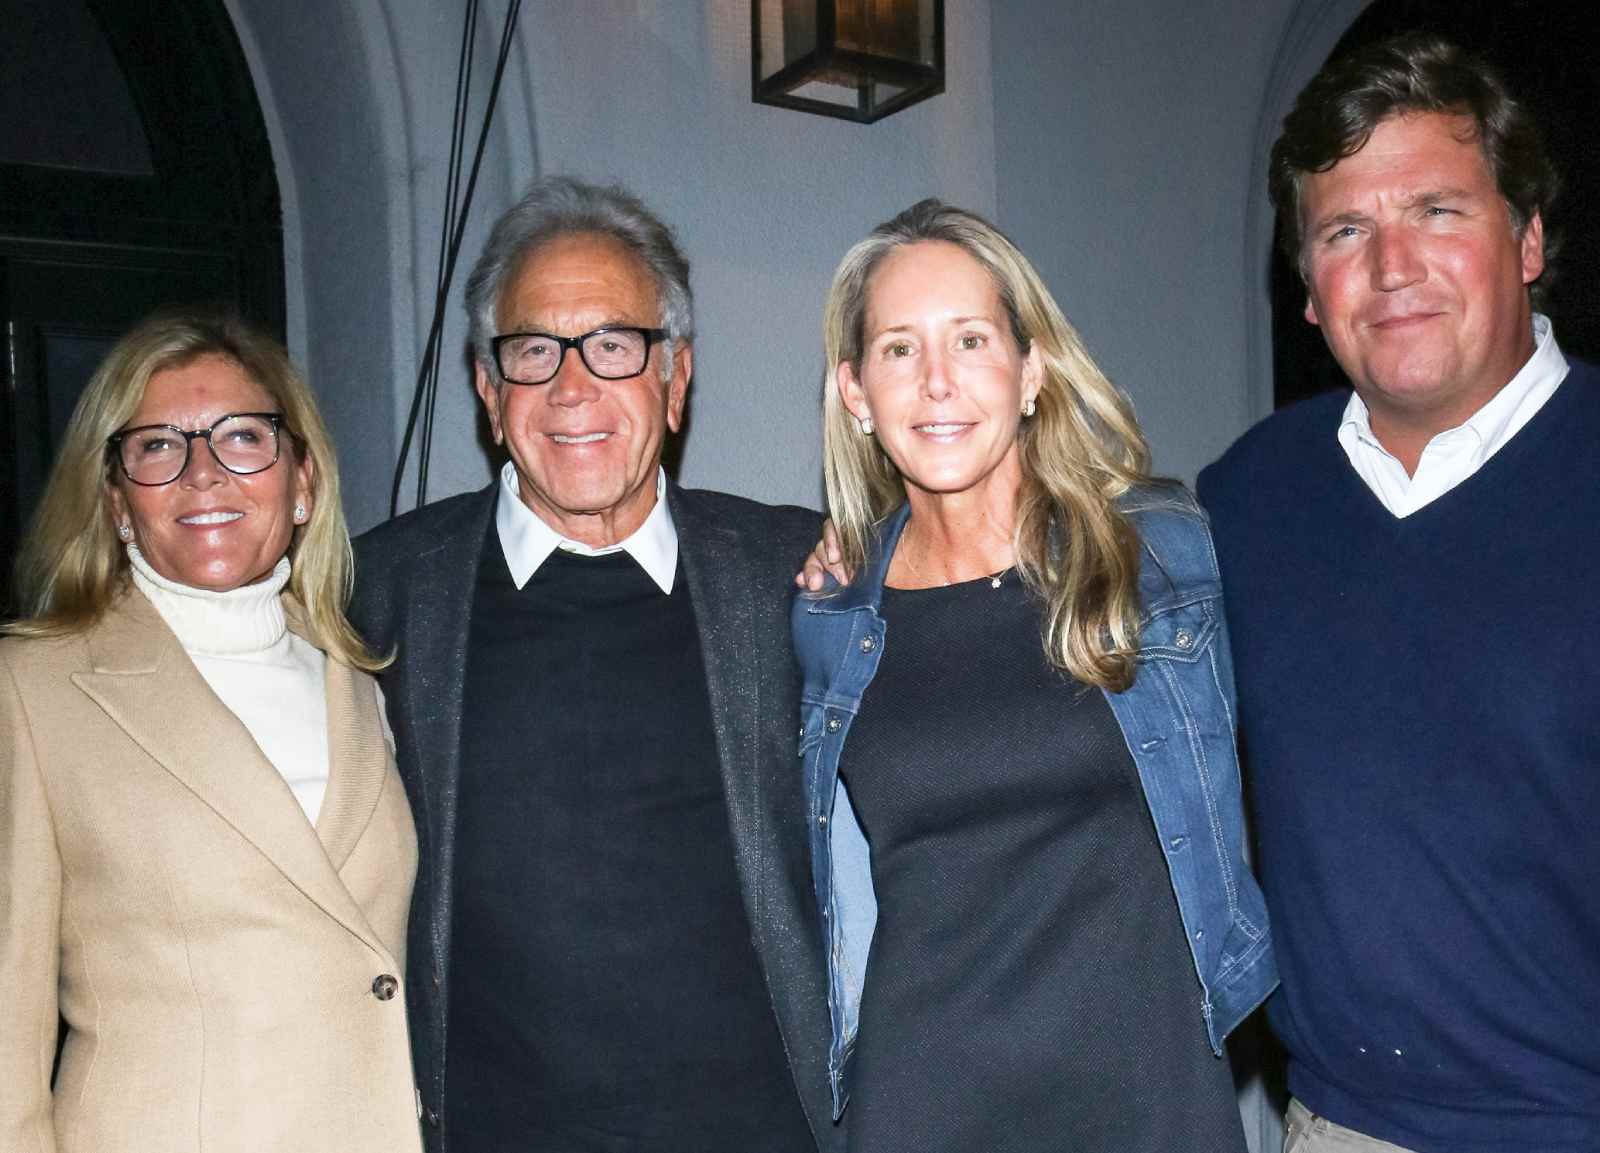 James and Eleanor Randall with Tucker Carlson, Susan Andrews